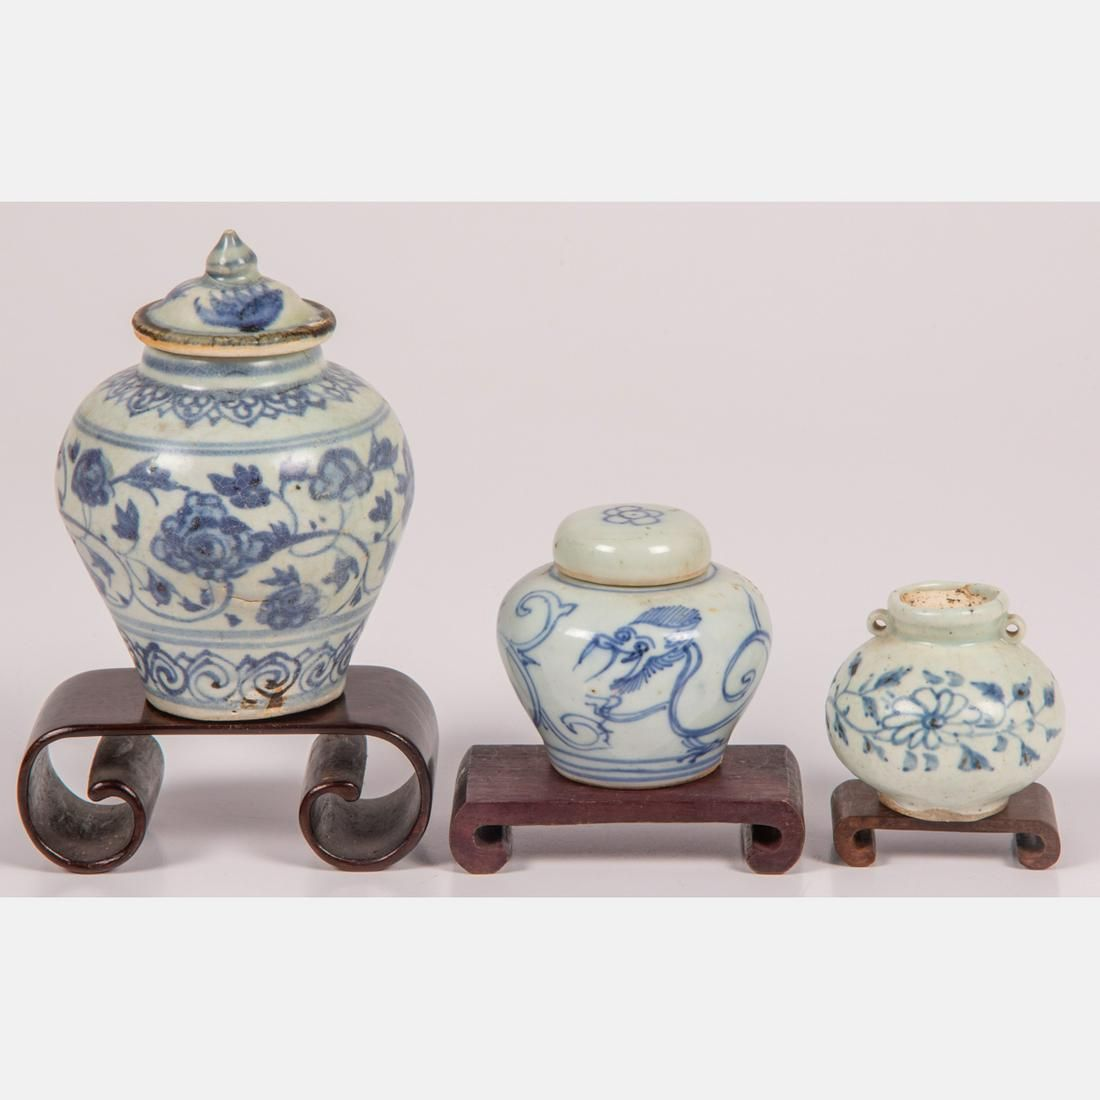 A Group of Diminutive Chine Blue and White Porcelain